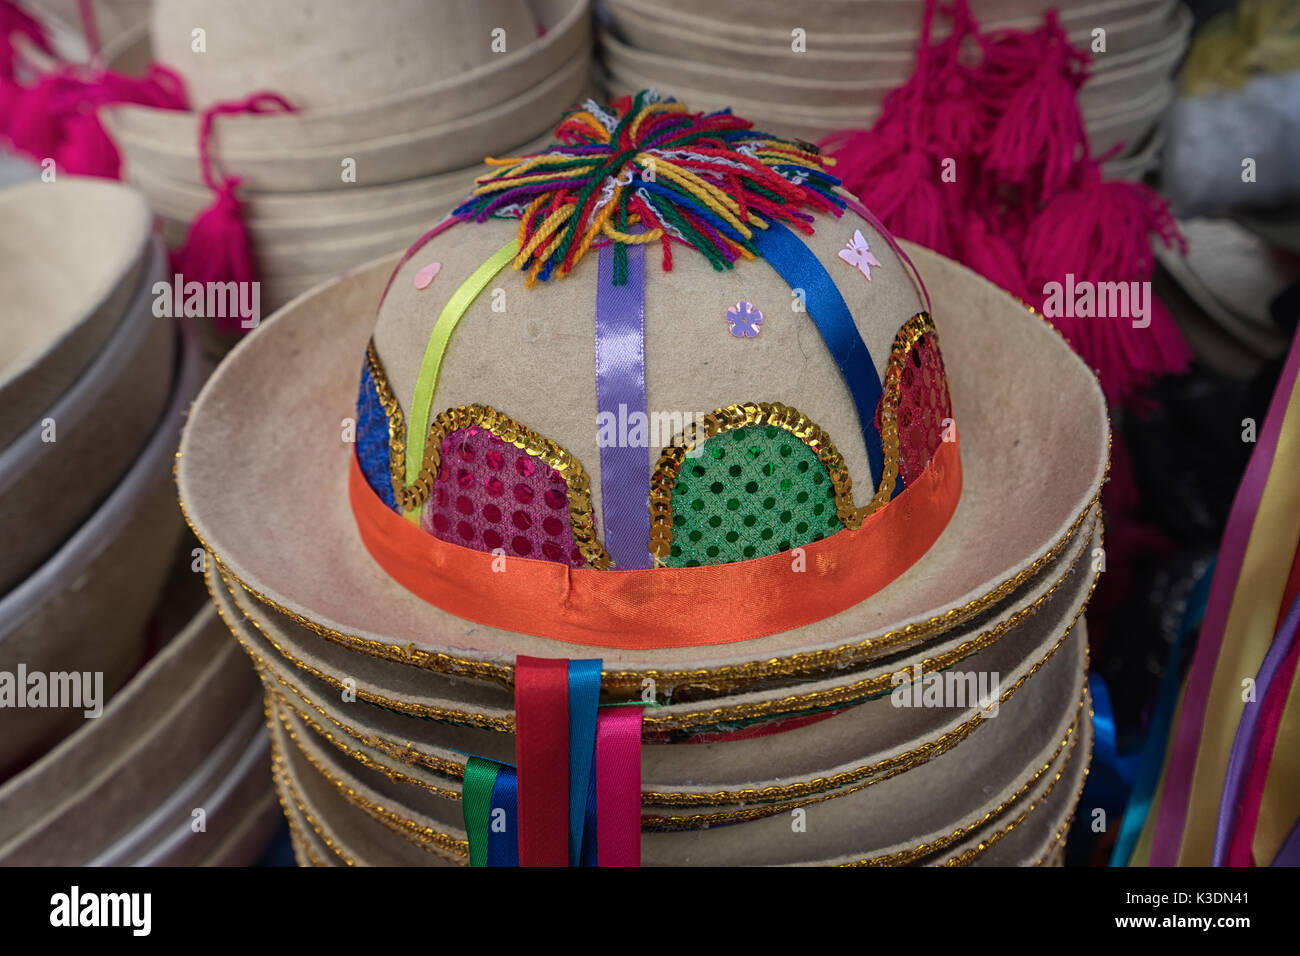 decorated traditional quechua felt hat in the Otavalo artisan market - Stock Image